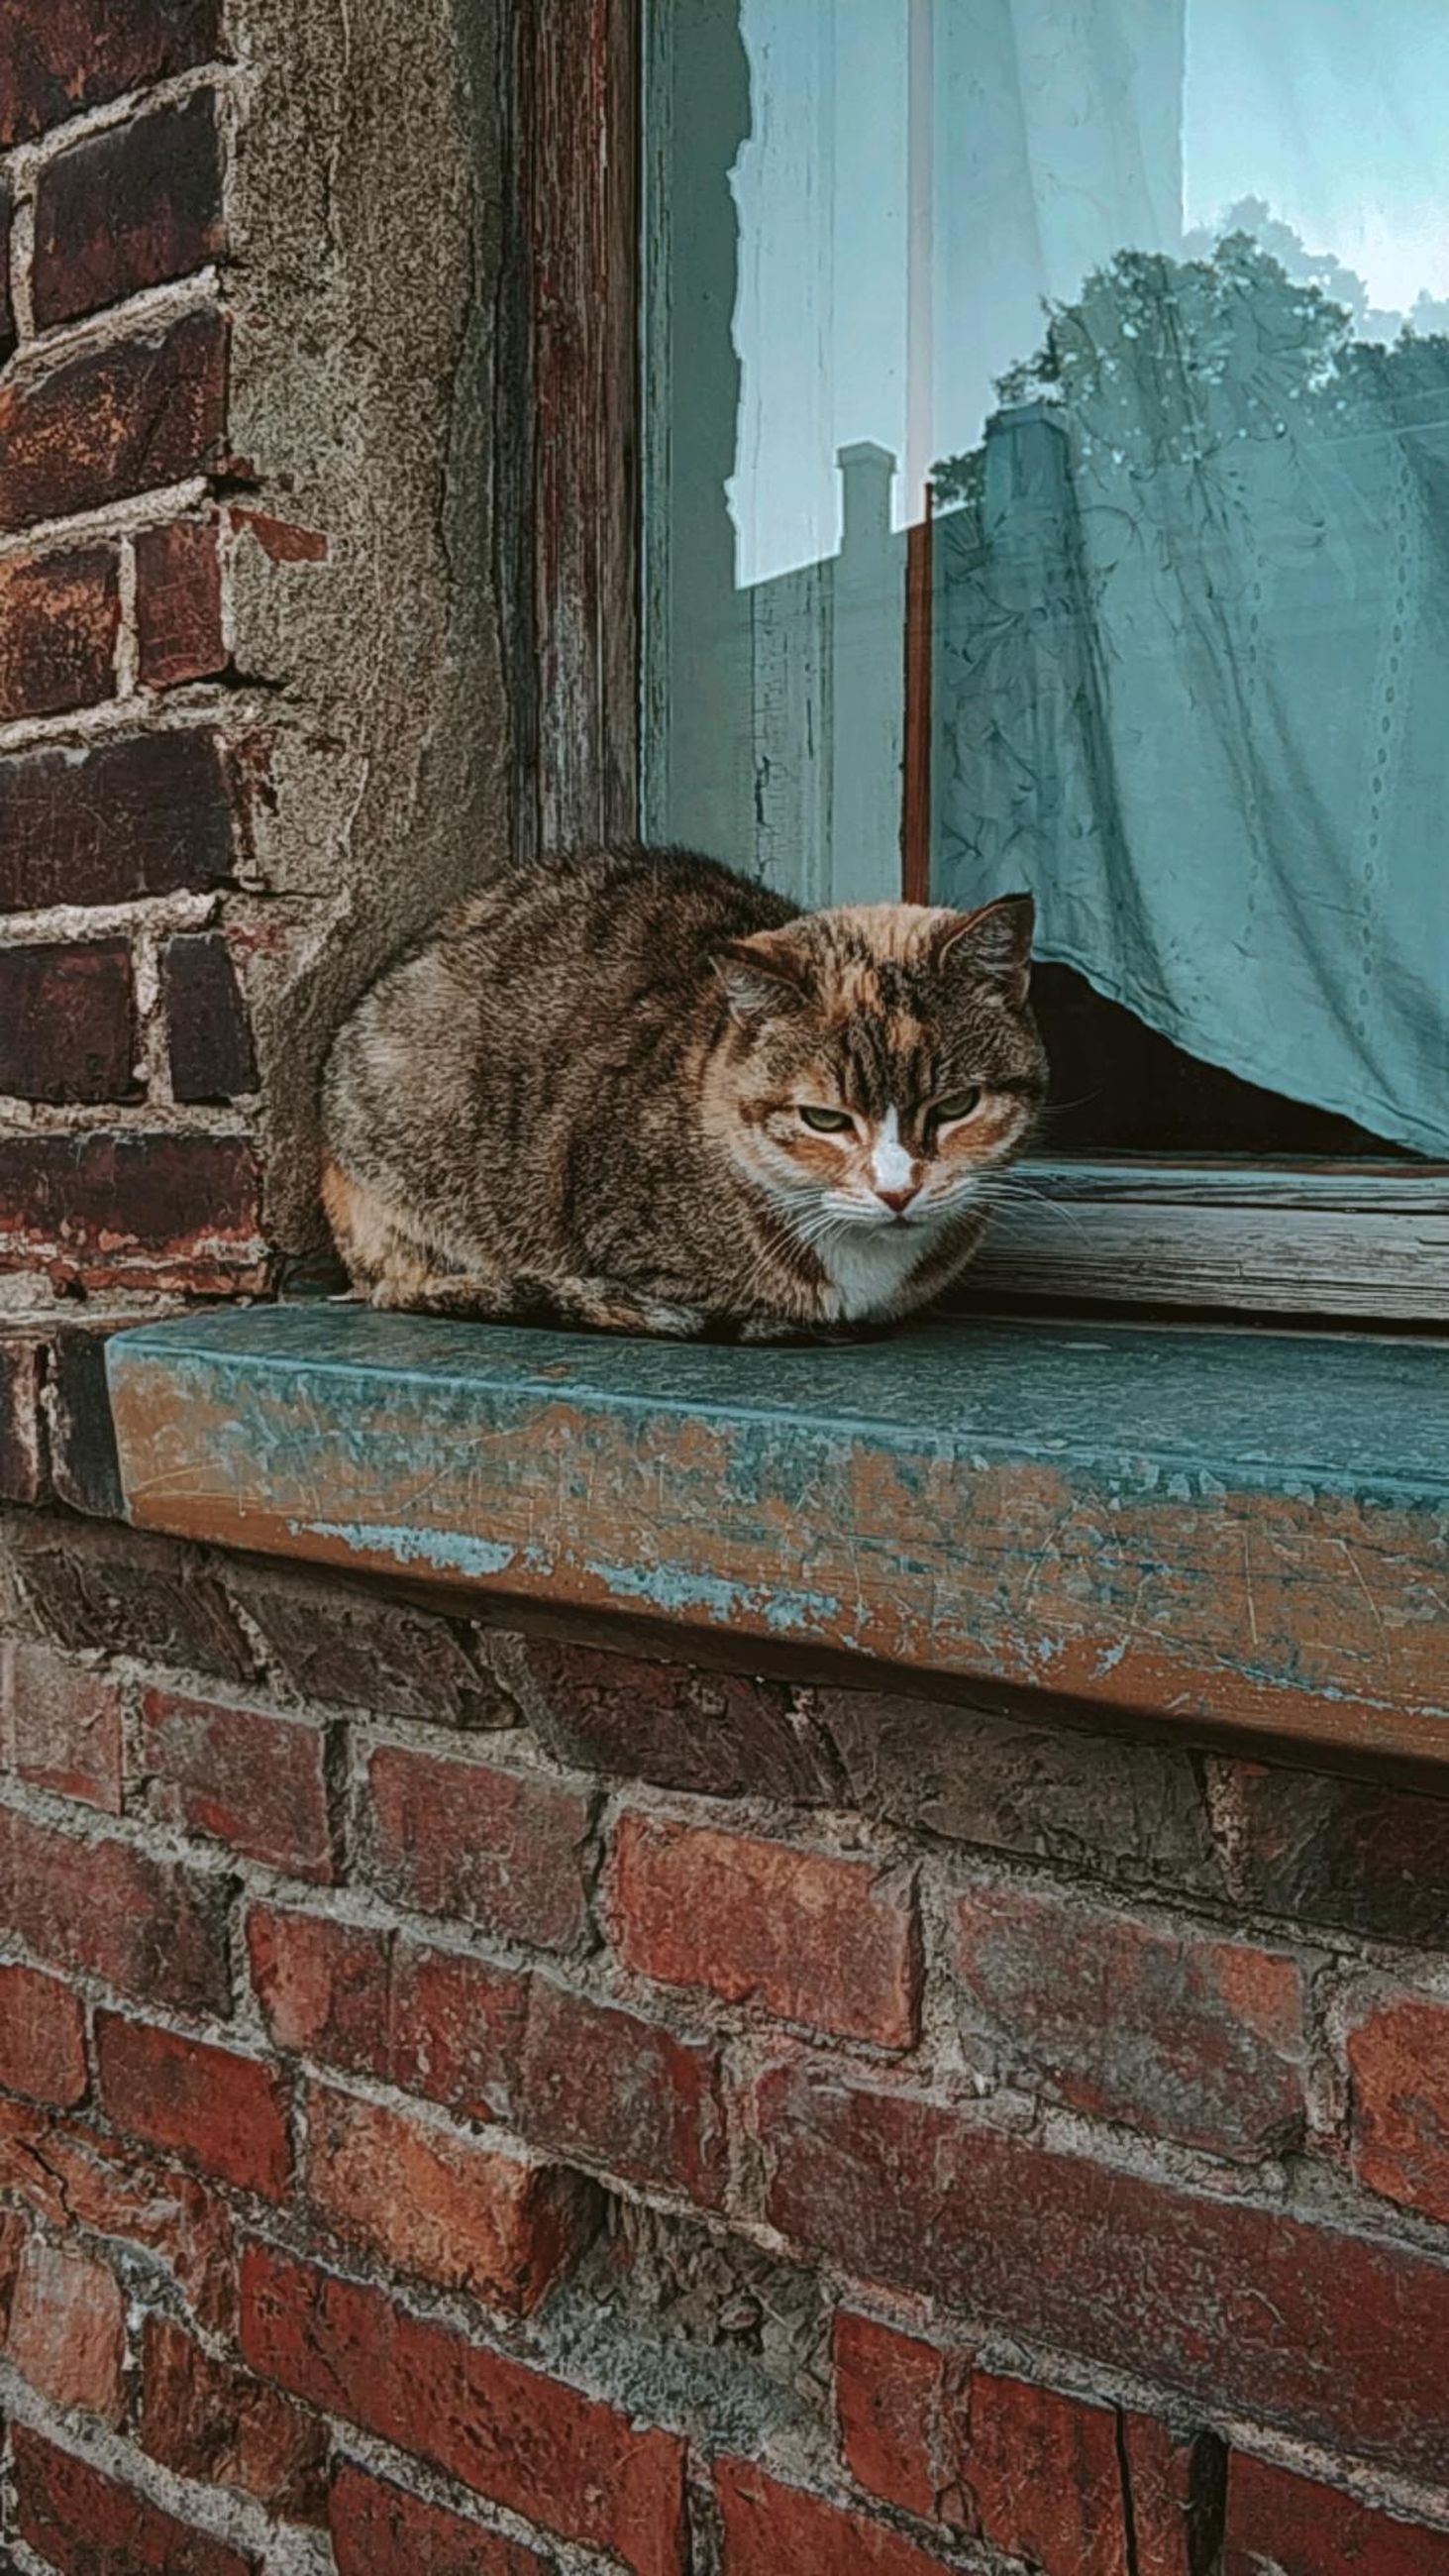 cat, domestic cat, feline, mammal, domestic, pets, one animal, domestic animals, animal themes, animal, wall, vertebrate, relaxation, wall - building feature, brick wall, brick, no people, architecture, looking at camera, portrait, whisker, animal head, maine coon cat